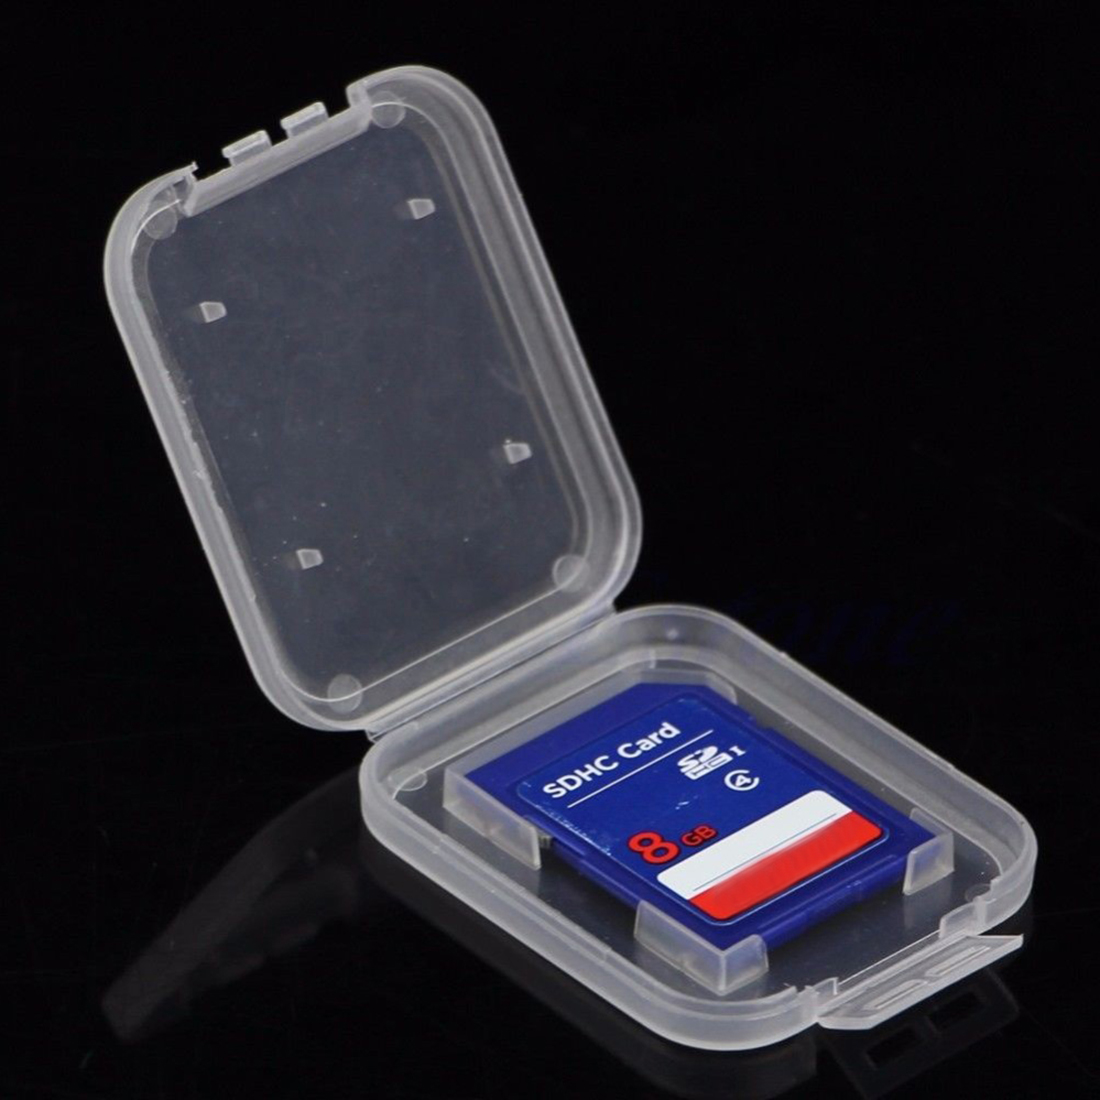 NOYOKERE 10Pcs SD SDHC Memory Card Case Holder Protector Transparent Plastic Box Storage Cases